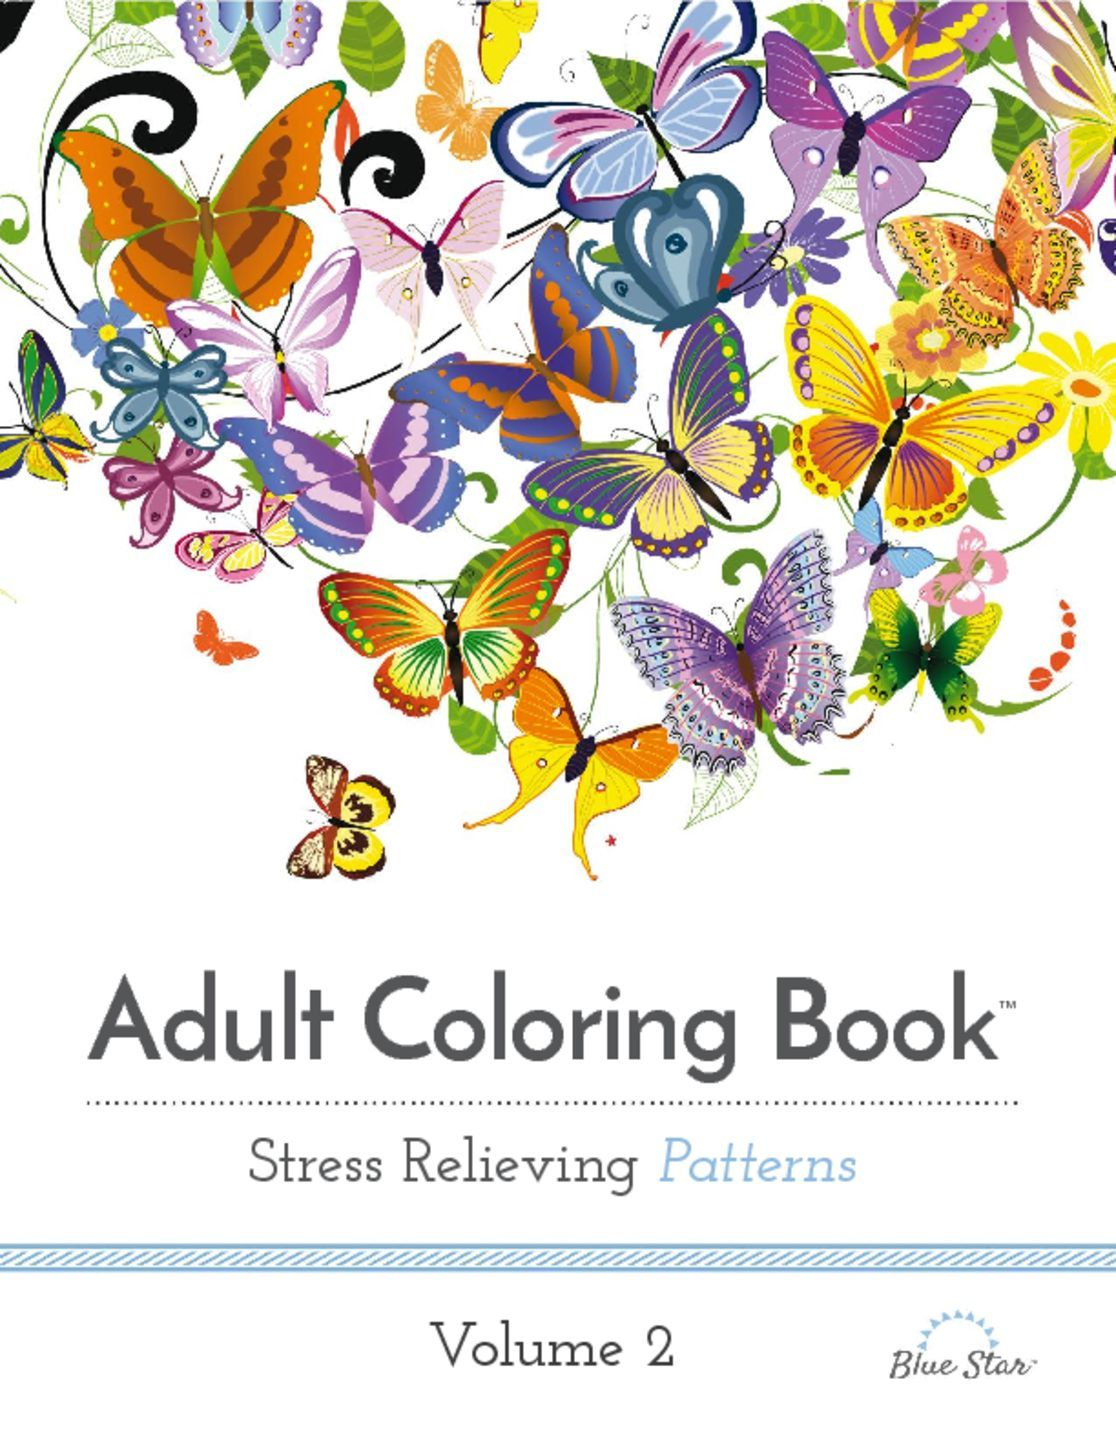 Adult Coloring Book Stress Relieving Patterns Volume 2 Digital